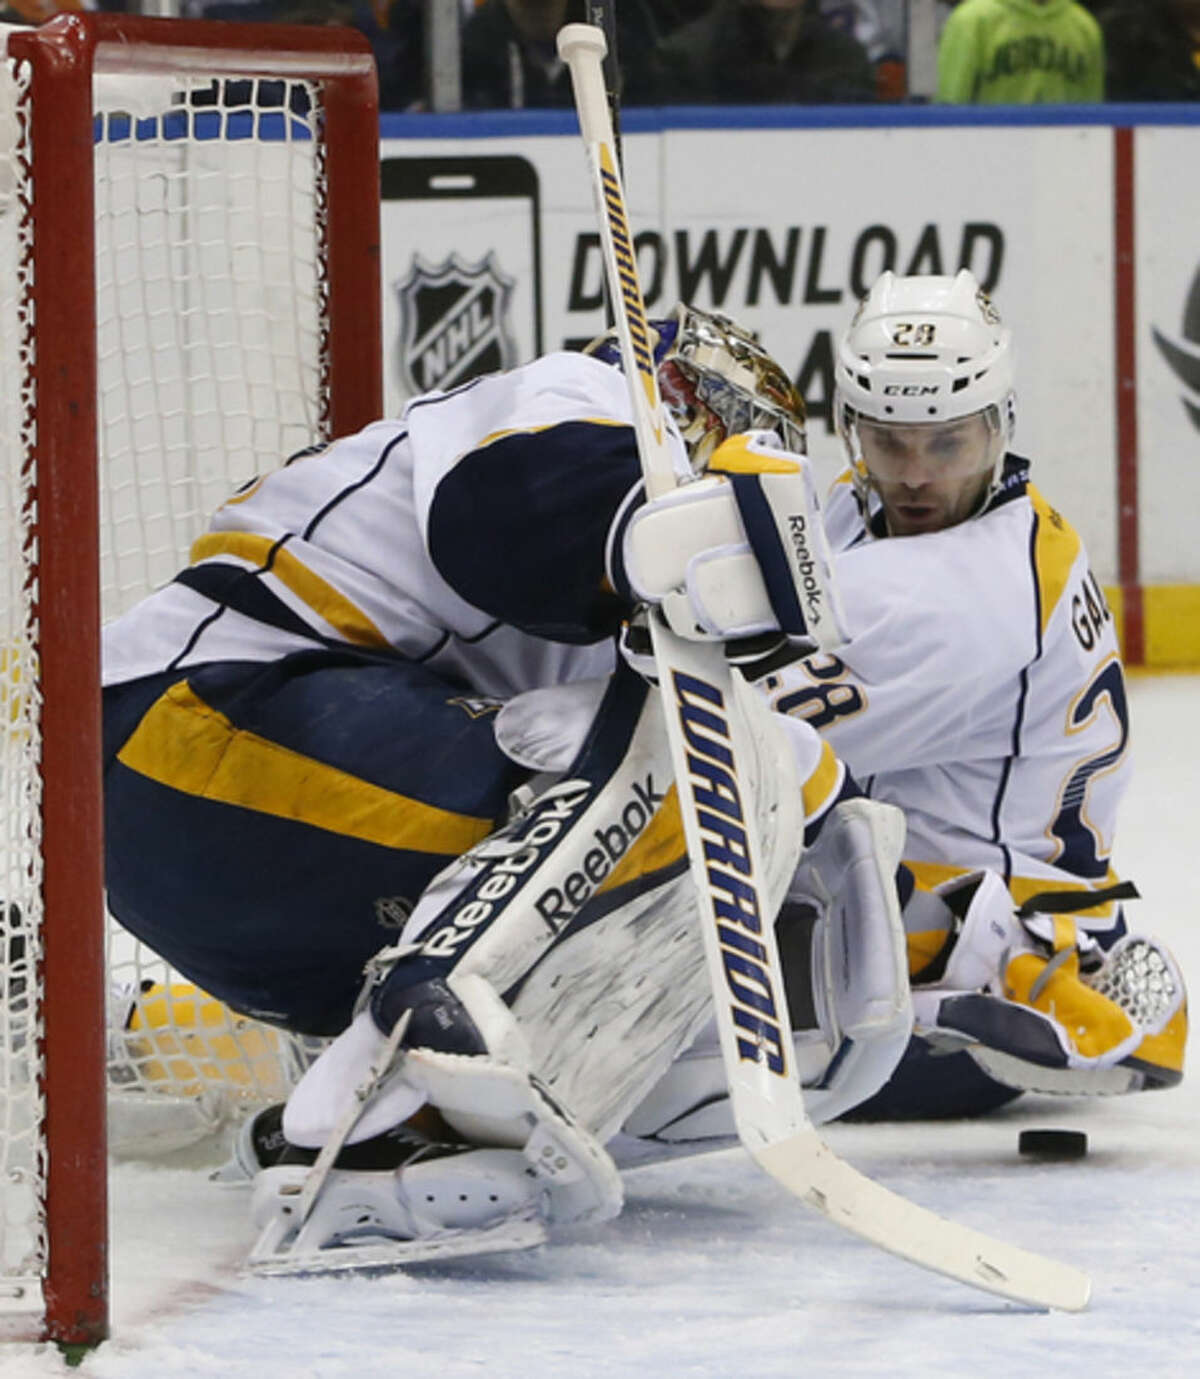 Nashville Predators center Paul Gaustad (28) watches as Predators goalie Pekka Rinne (35) of Finland, makes a save in the second period of an NHL hockey game at Nassau Coliseum in Uniondale, N.Y., Thursday, Feb. 19, 2015. (AP Photo/Kathy Willens)